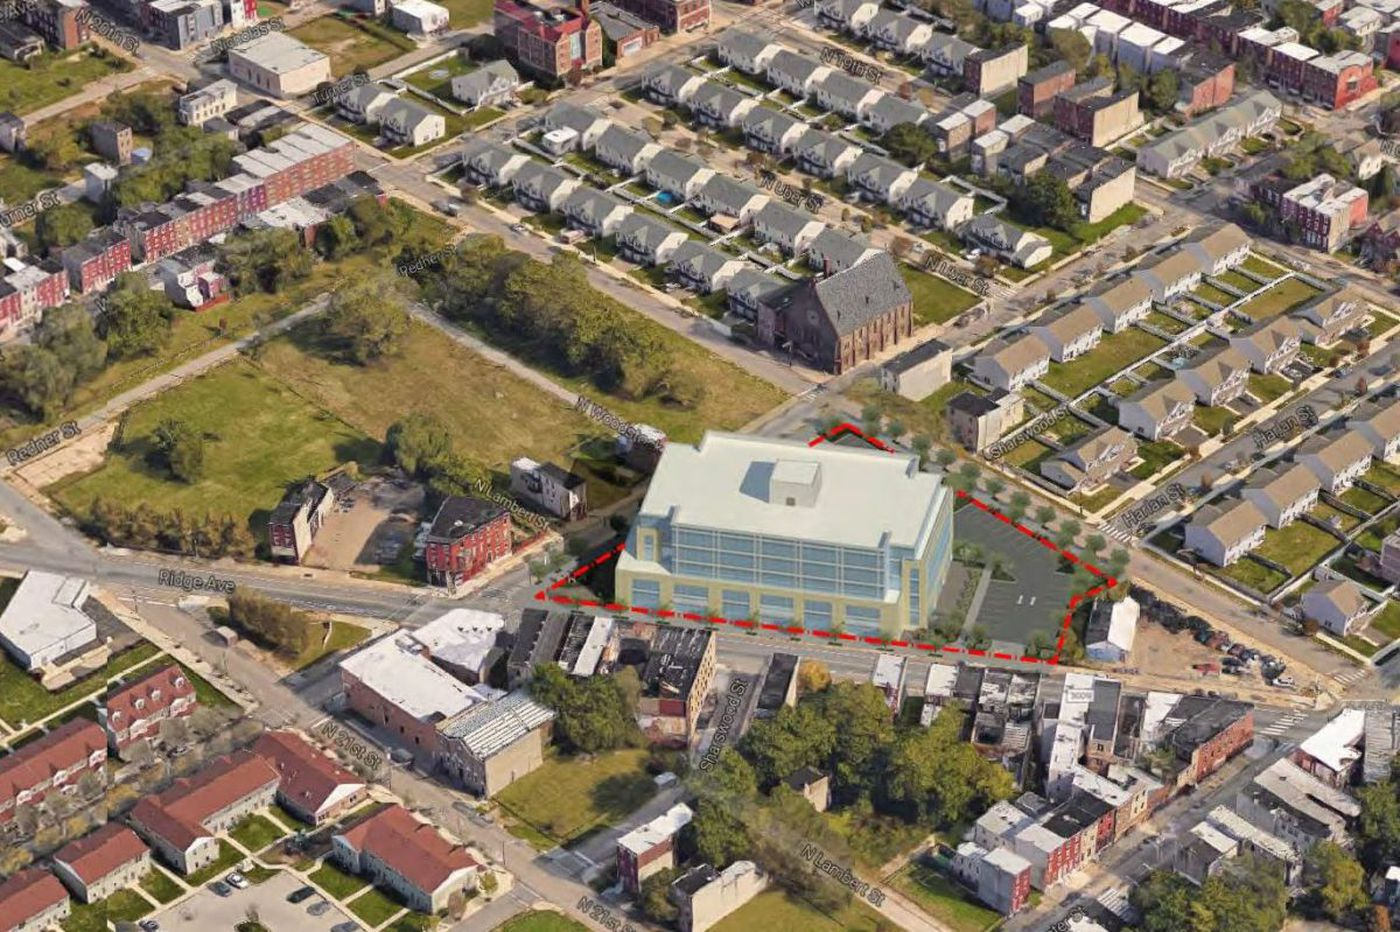 Philly puts aside $3.4M more for Sharswood properties